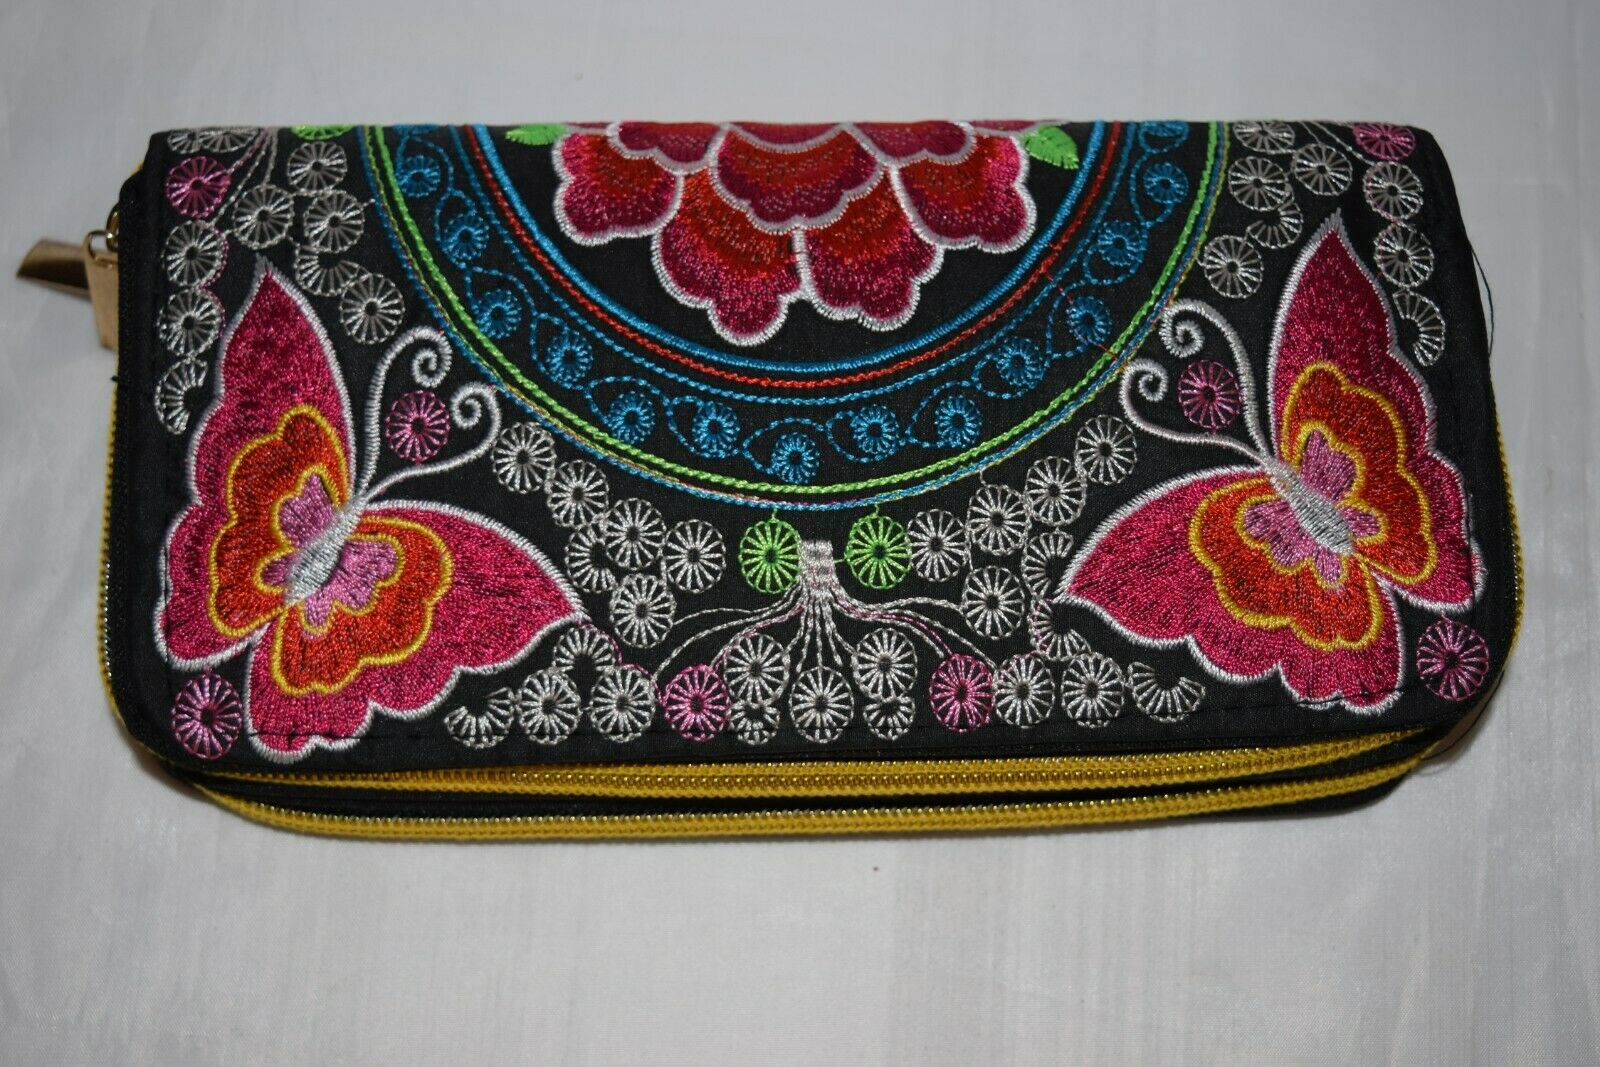 Purse Sabai Jai Ethnic Embroidered handbag ladies wallet clutch Handmade boho